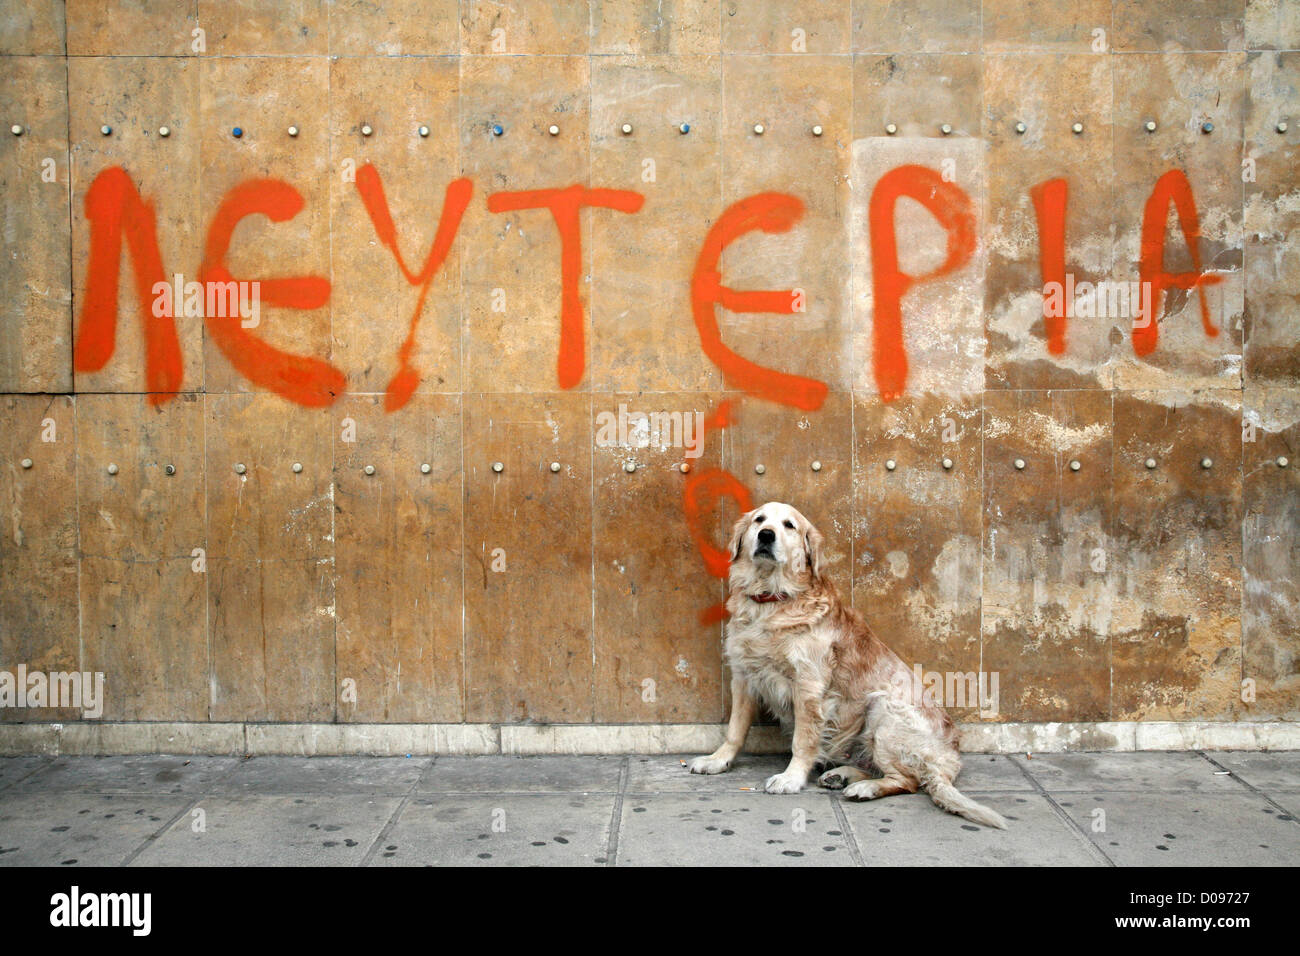 Thessaloniki, Greece. November 19, 2012. A dog sits in front of a graffiti that reads Freedom, in Thessaloniki's - Stock Image